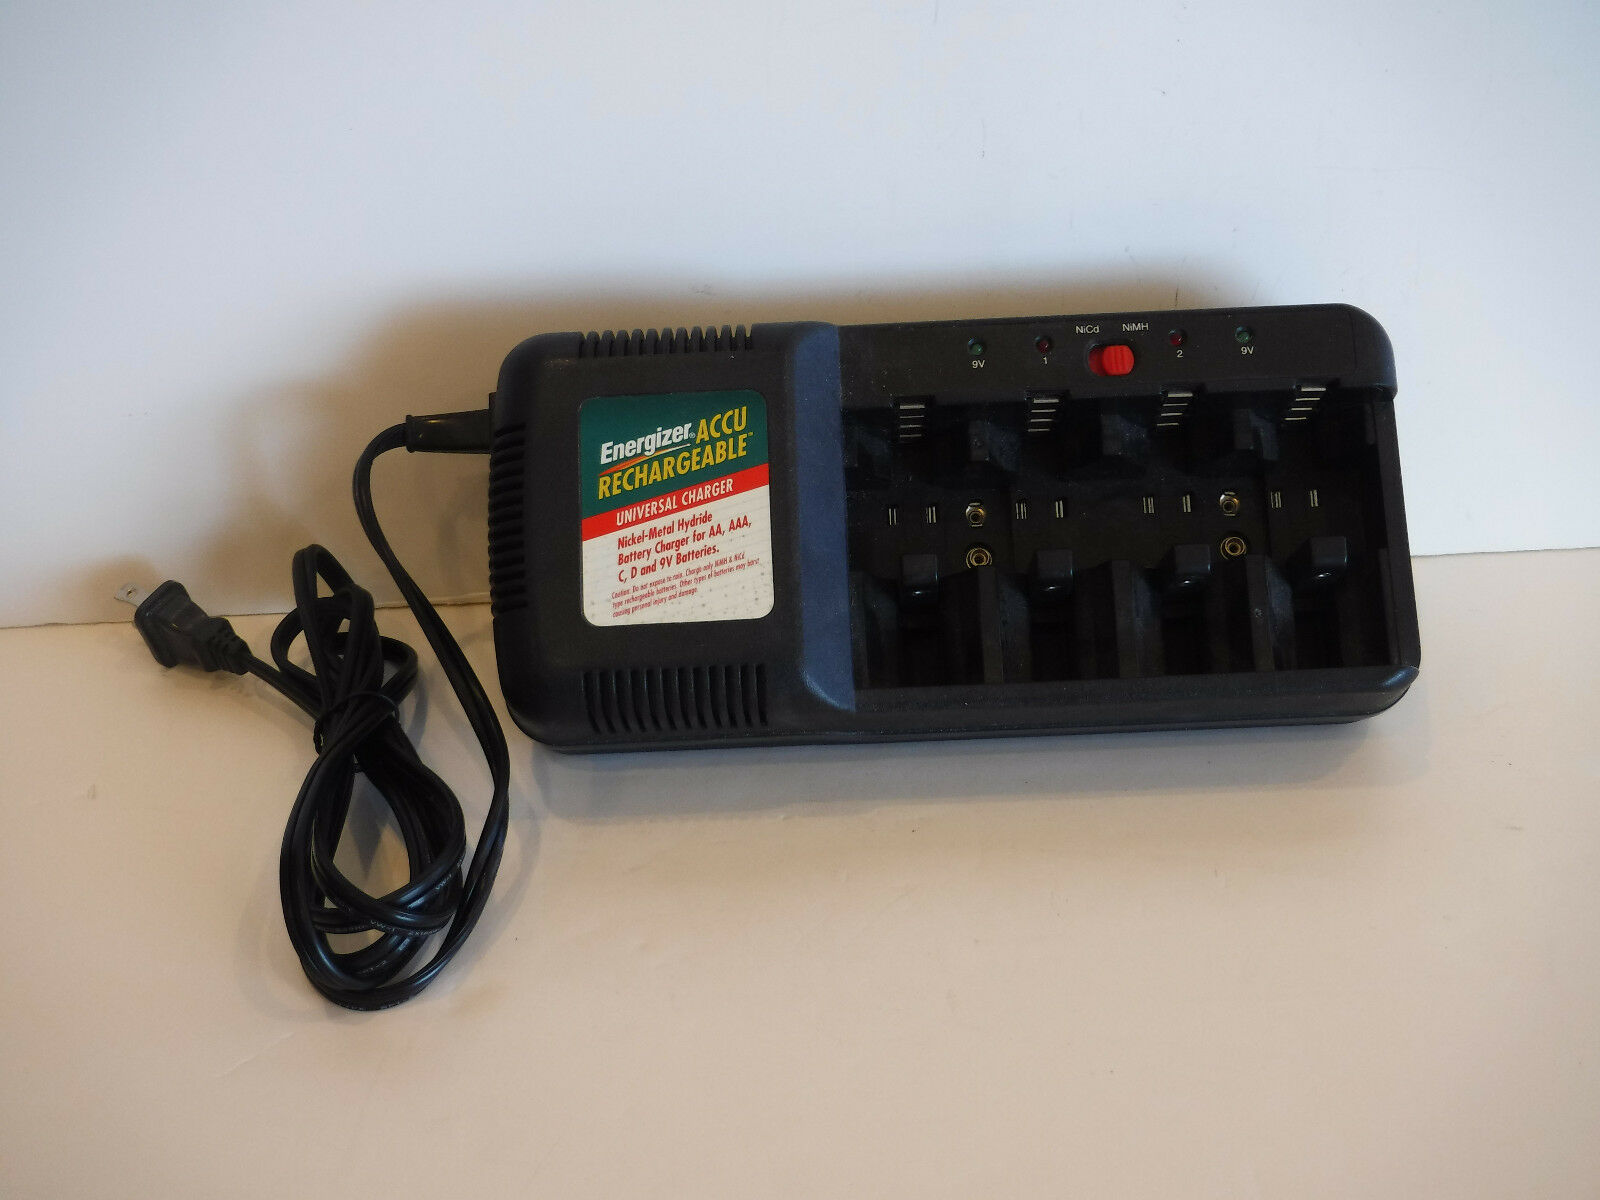 Accu Rechargeable Energizer Accu Rechargeable Universal Nimh Nicd Battery Charger Chm4fc